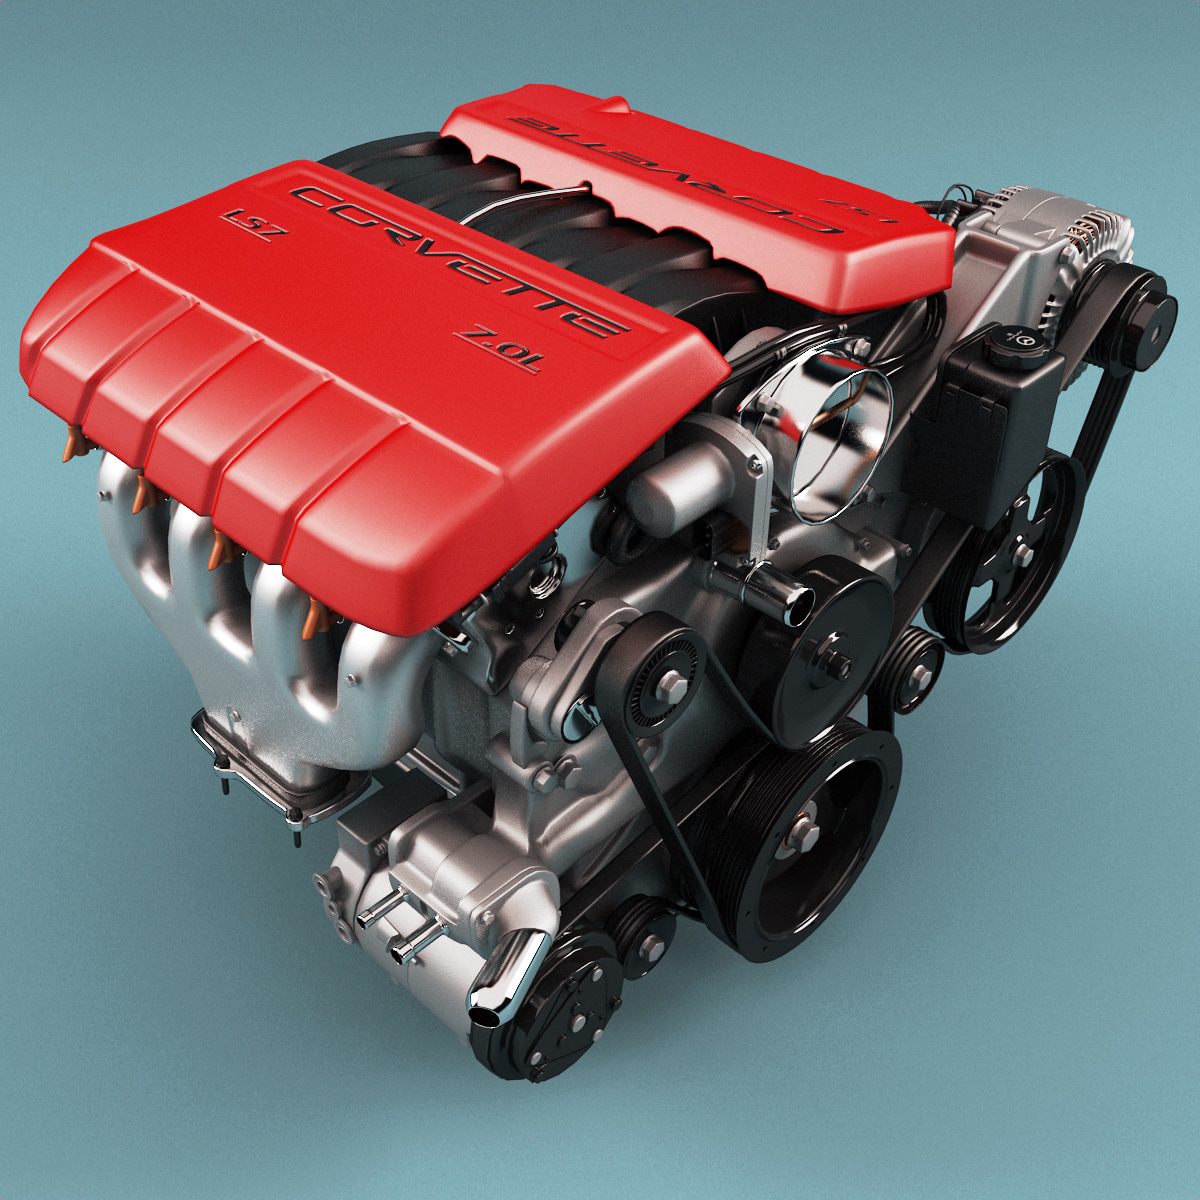 Chevrolet_Corvet_LS7_Engine_01.jpg